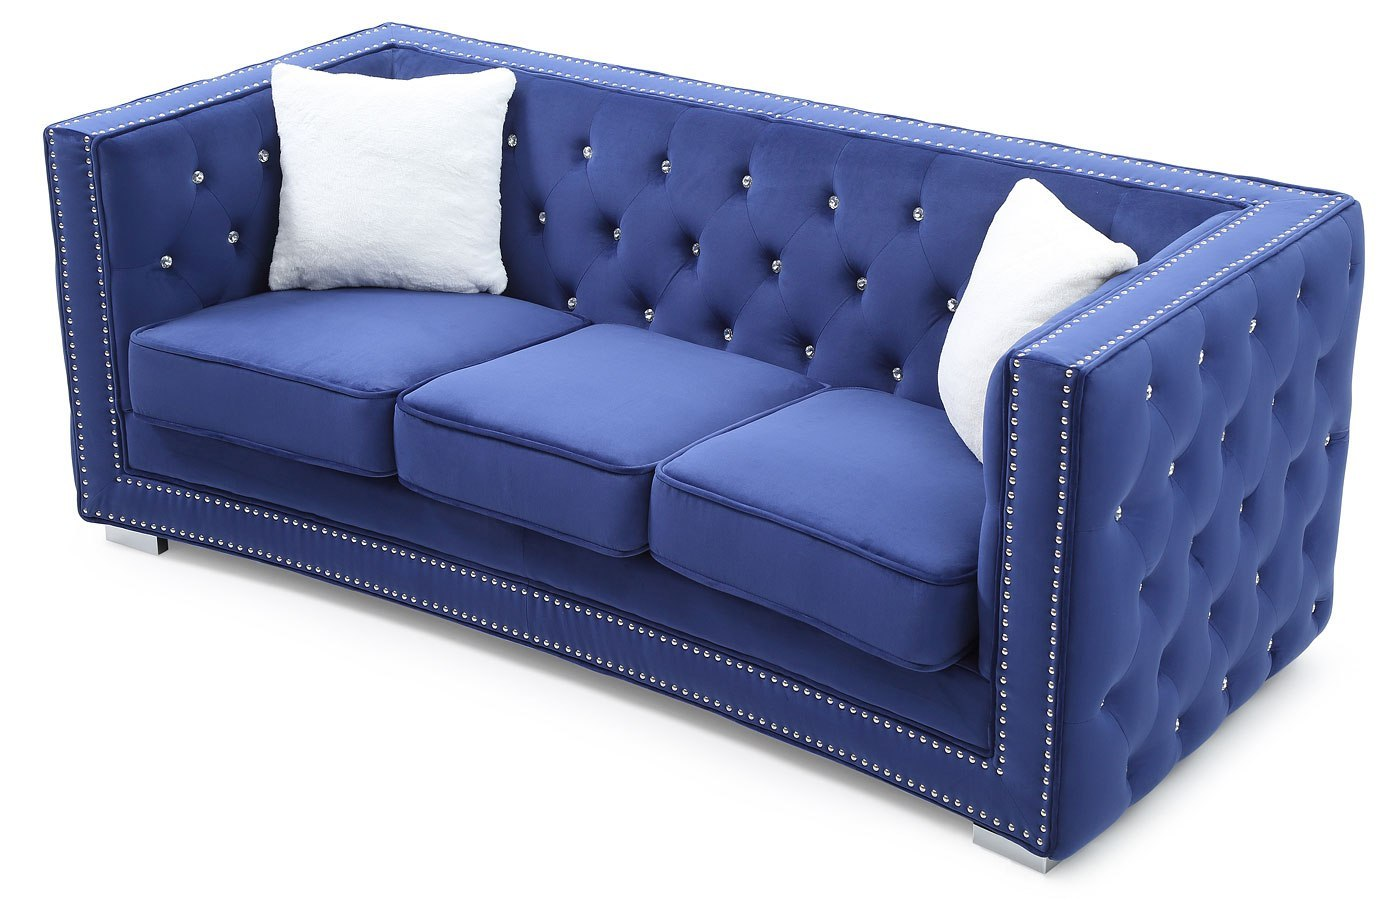 Groovy Miami Sofa Blue Download Free Architecture Designs Scobabritishbridgeorg